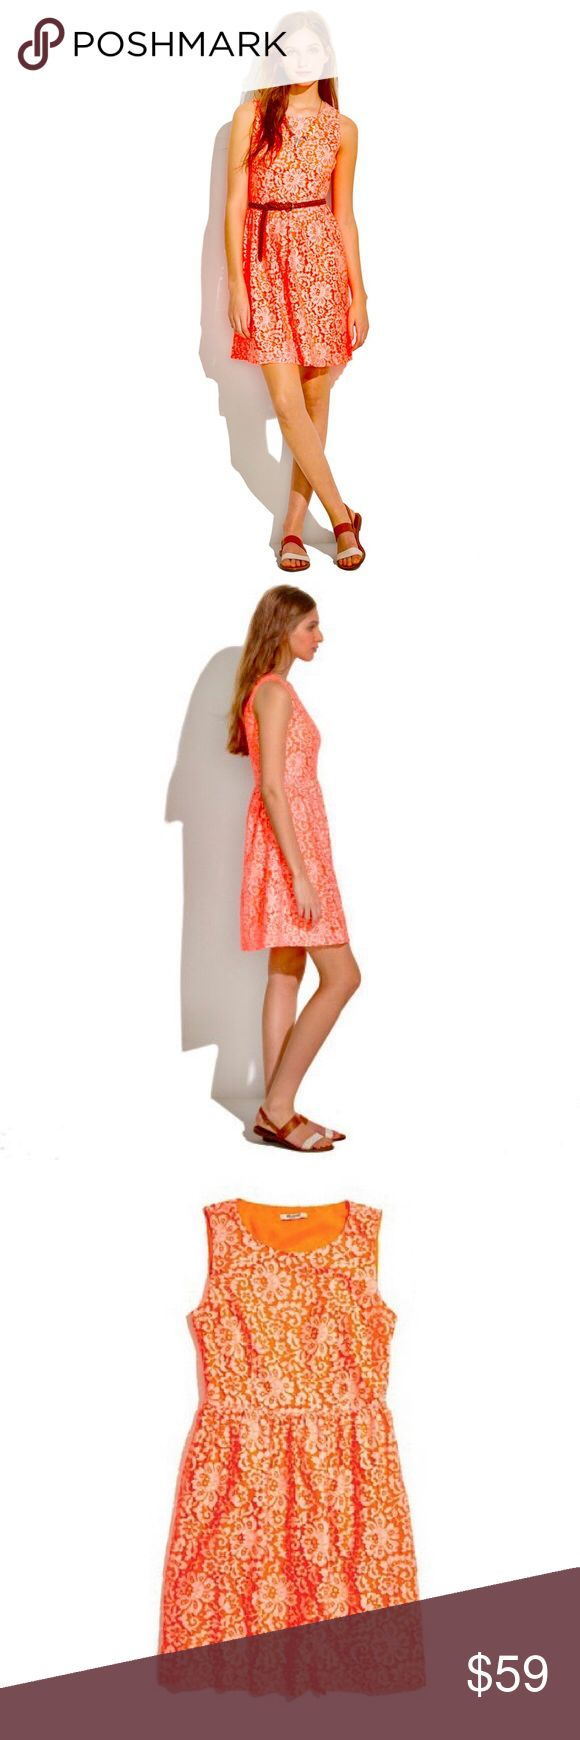 "NWOT Madewell neon orange pink lace blossom dress New without tags. Never worn. Bright, vibrant pinky orange hue. Nearly fluorescent without being overwhelming. A super-flattering silhouette with a feminine full skirt blooms in lace. Fitted at waist. Falls 35 1/2"" from shoulder. Nylon/cotton. Dry clean. Madewell Dresses"